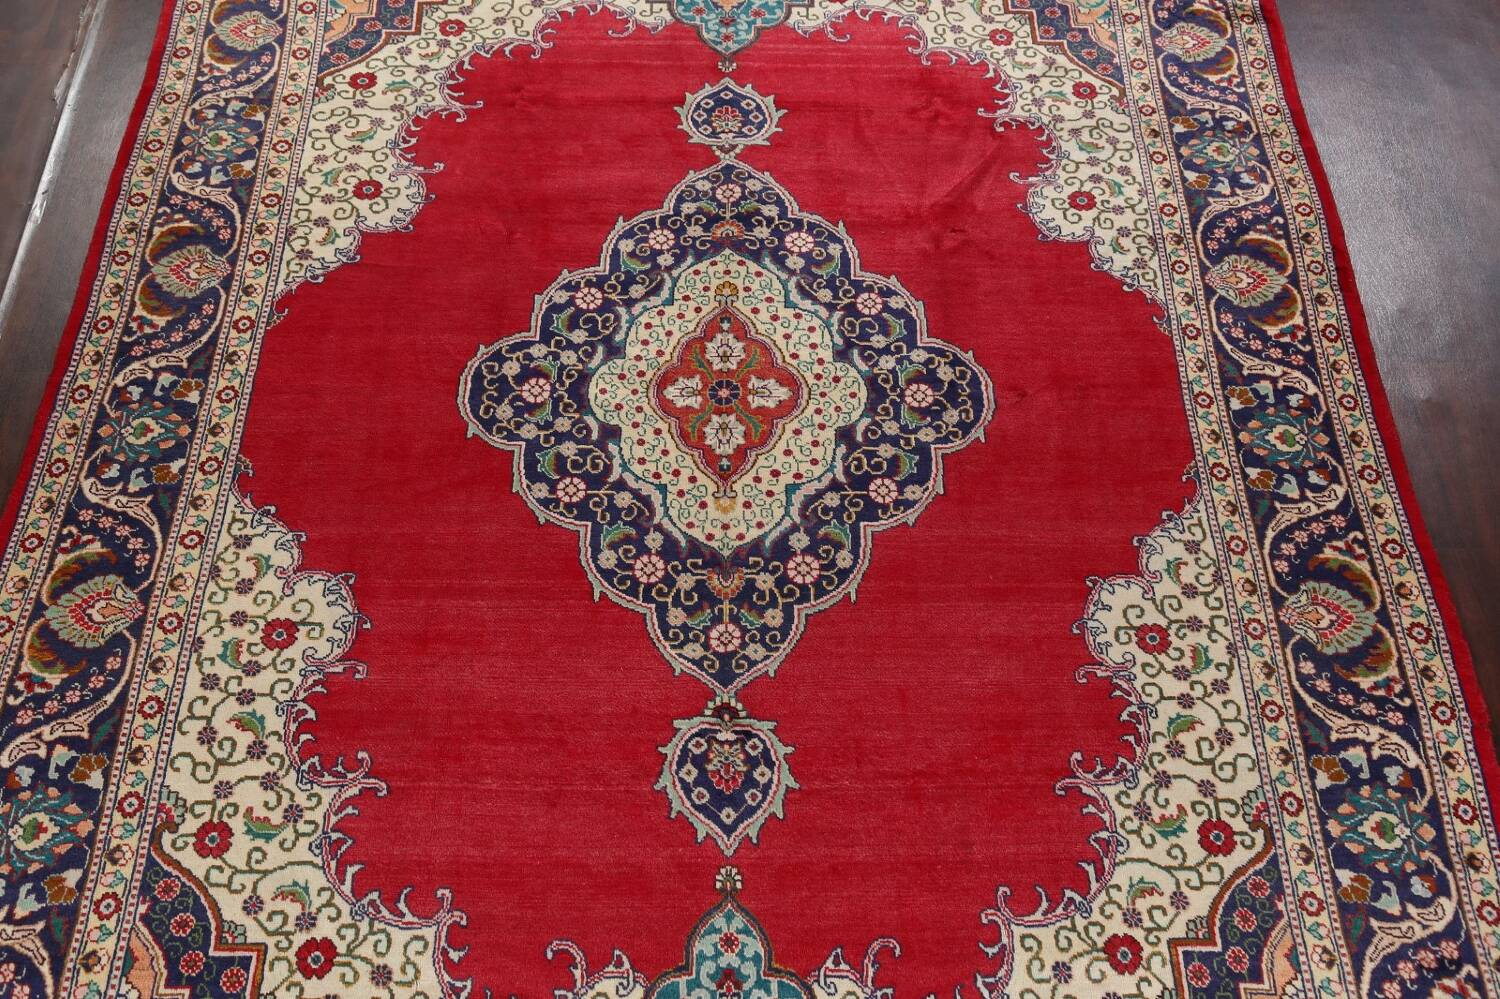 Floral Red Tabriz Persian Area Rug 10x13 image 3